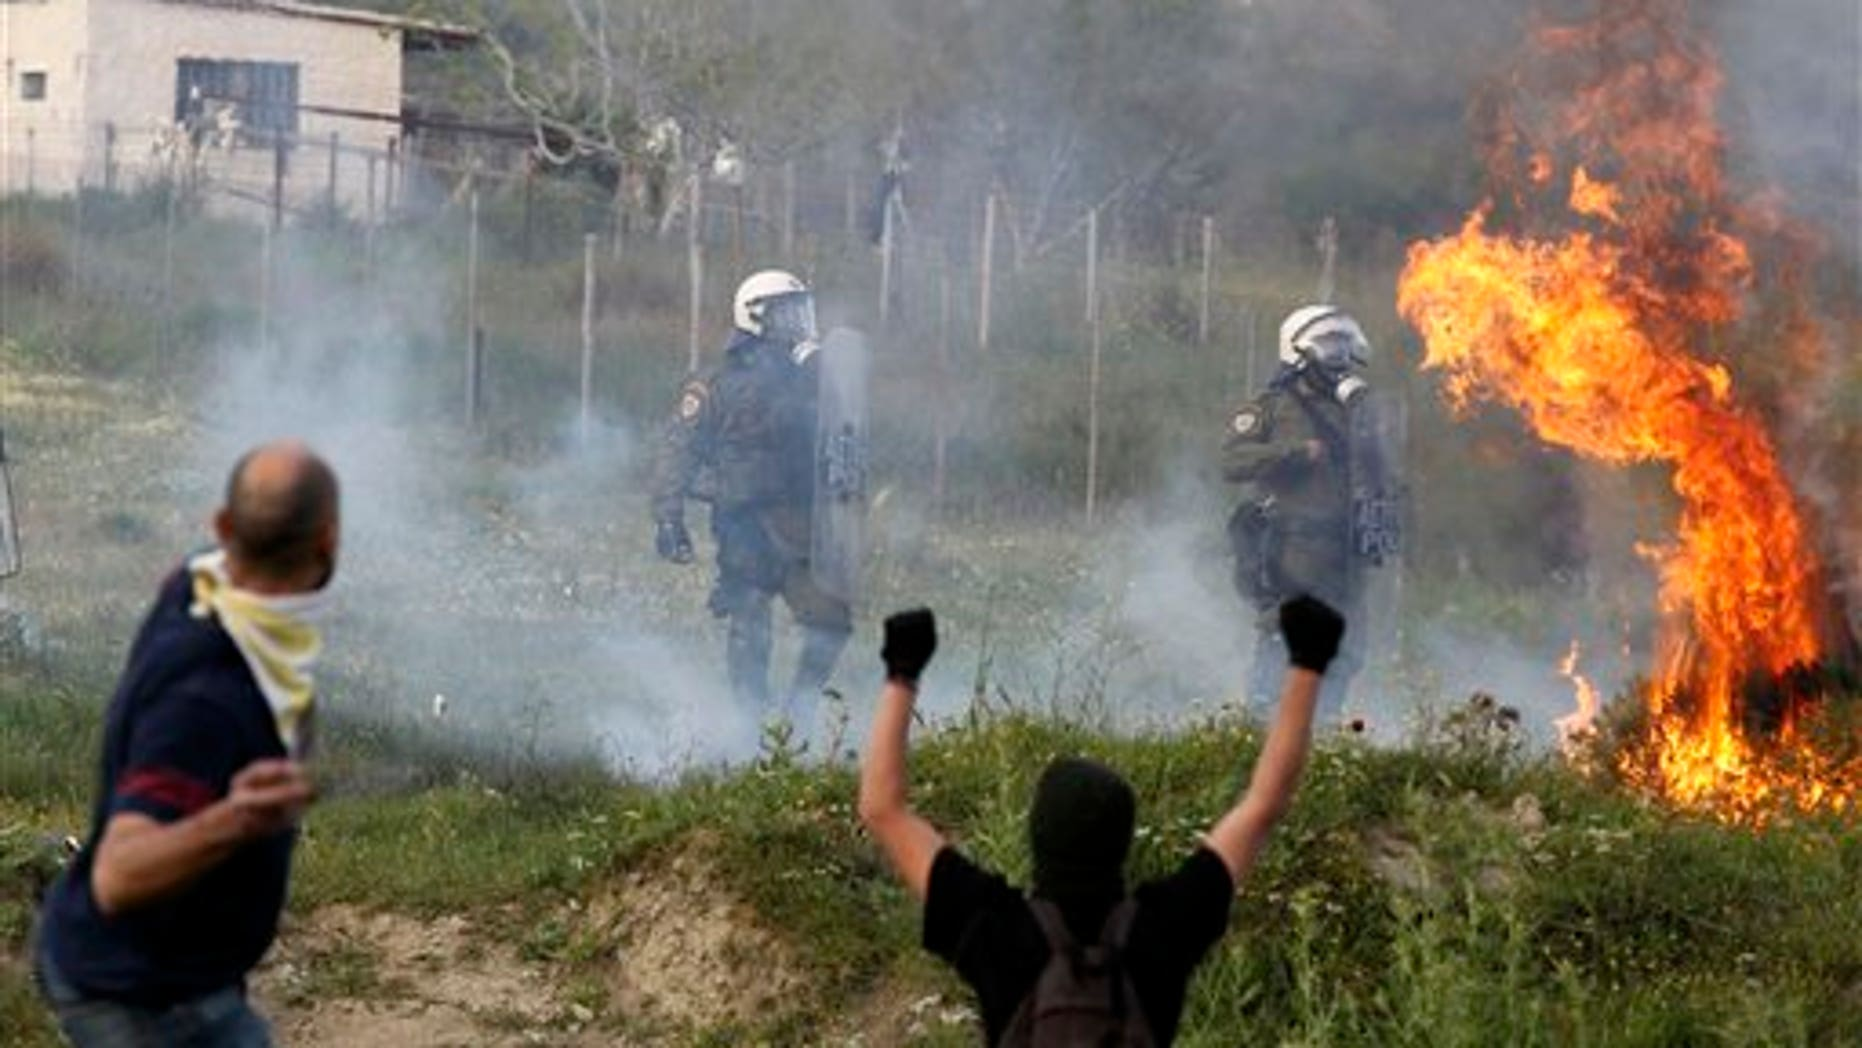 April 14: Protesters attack with gas bombs and stone against riot police during clashes in the town of Keratea, about 31 miles southeast of Athens. Greek protesters have used excavators to cut a shoulder-high trench on a busy road near a proposed new landfill, cutting off traffic outside Athens. Youths clashed later Thursday at the site with riot police, who responded with tear gas. (AP)